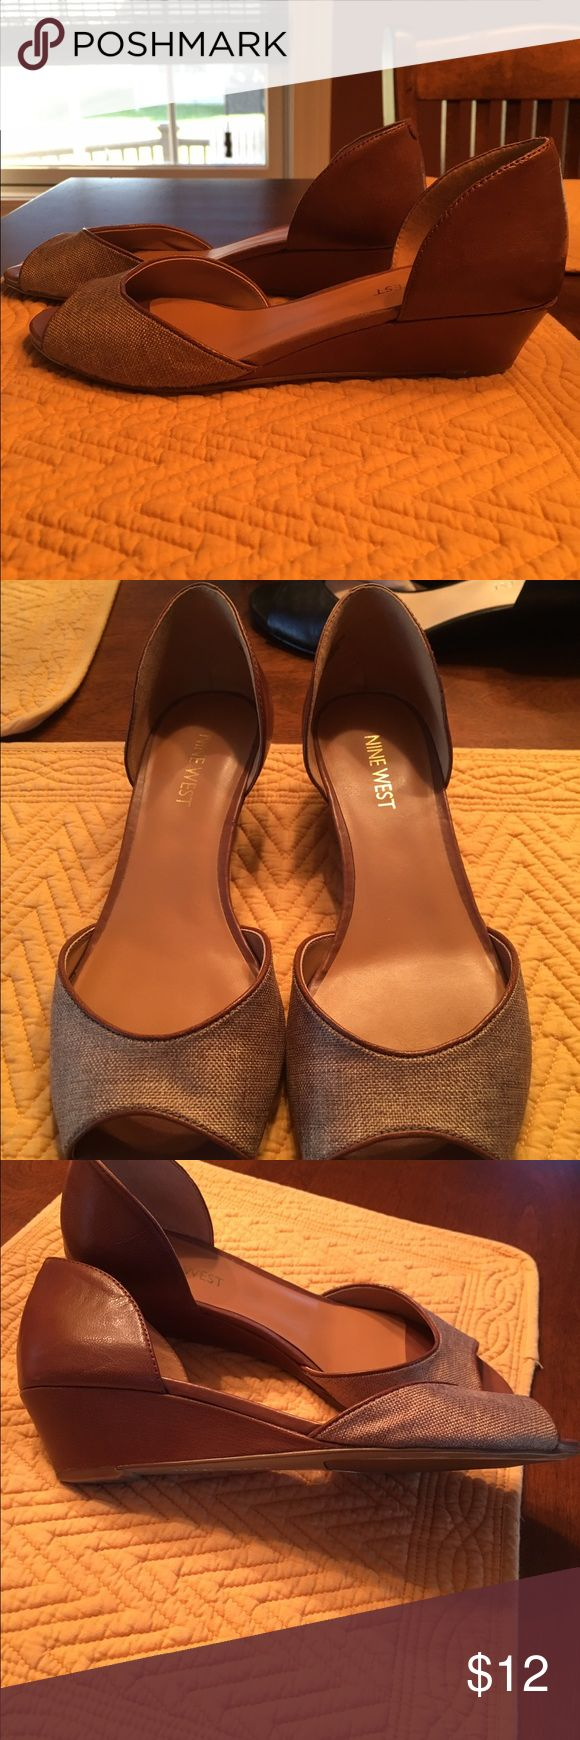 Nine West peep toe wedges Cute light brown wedges. Excellent condition, size 6. Nine West Shoes Wedges